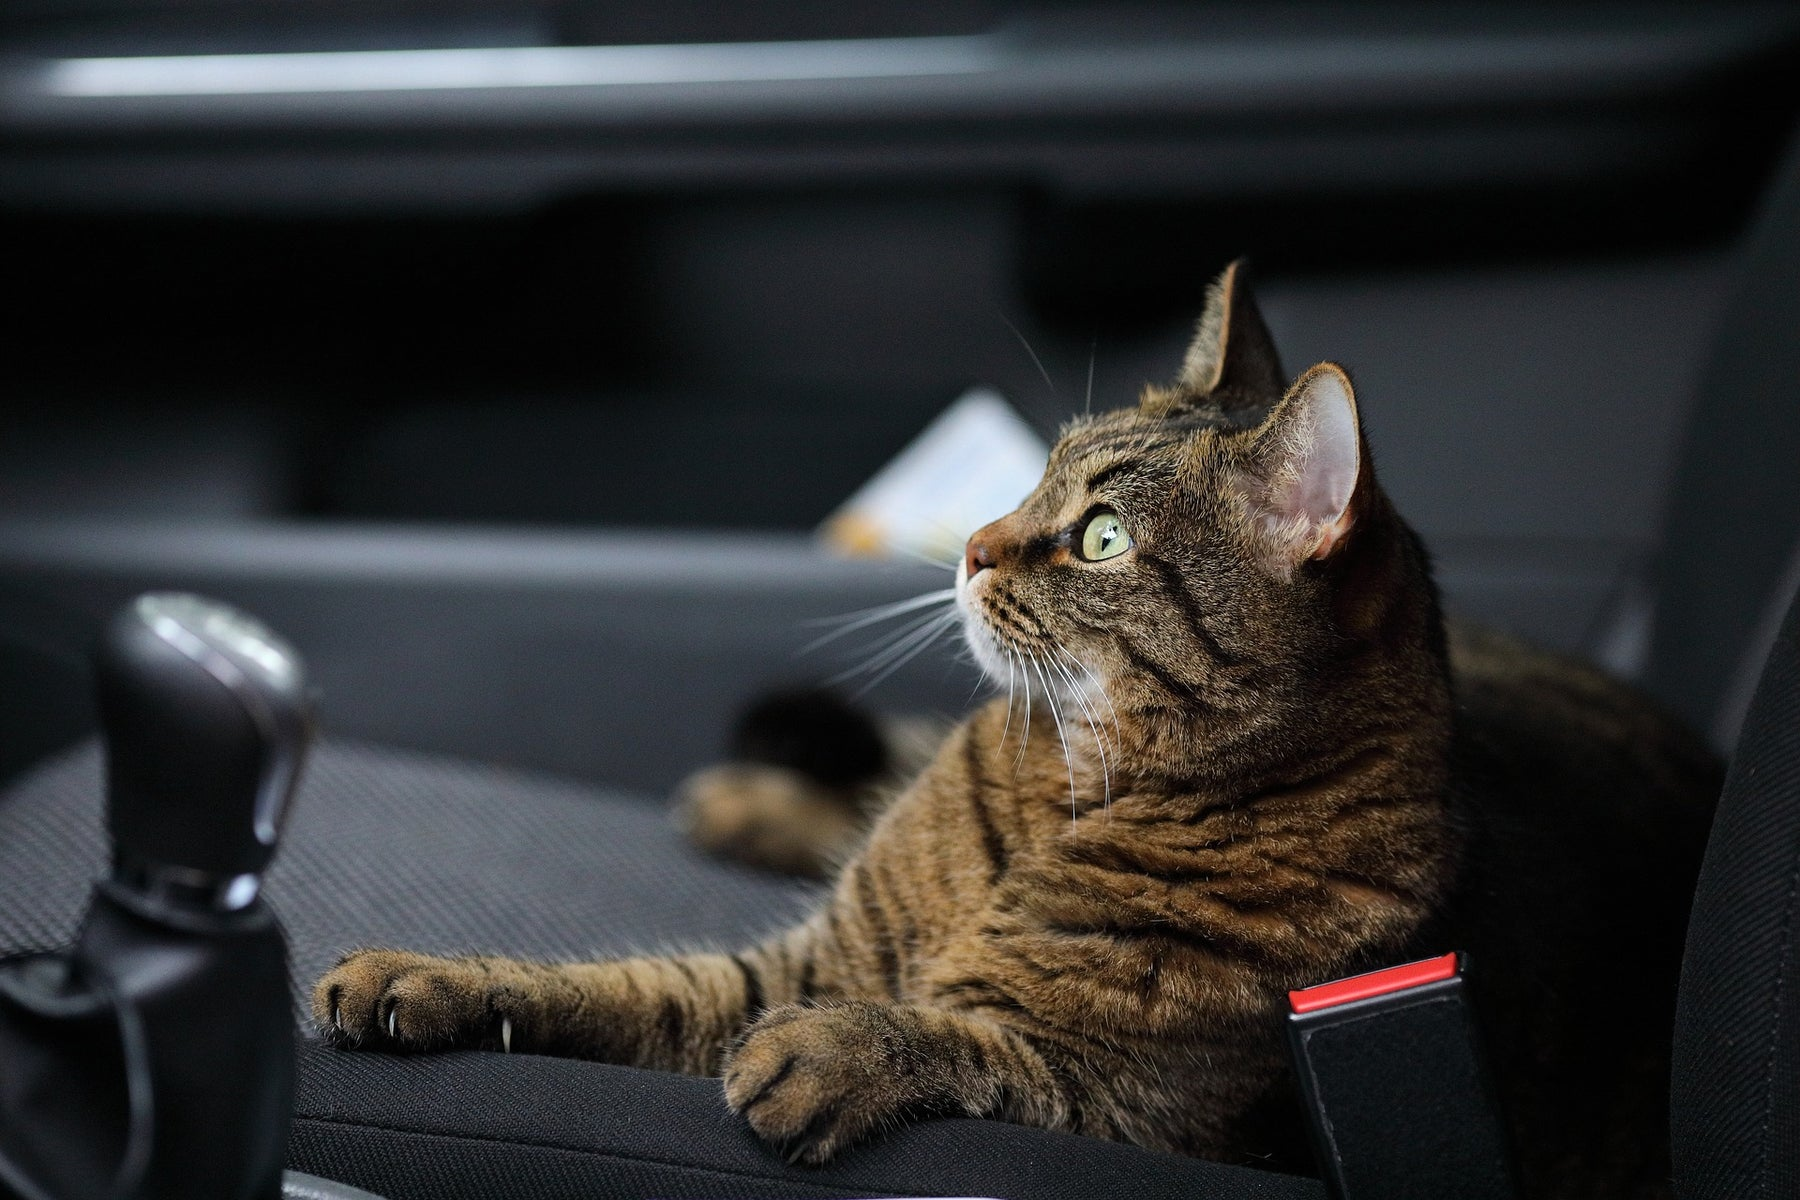 Road Trip for Cats